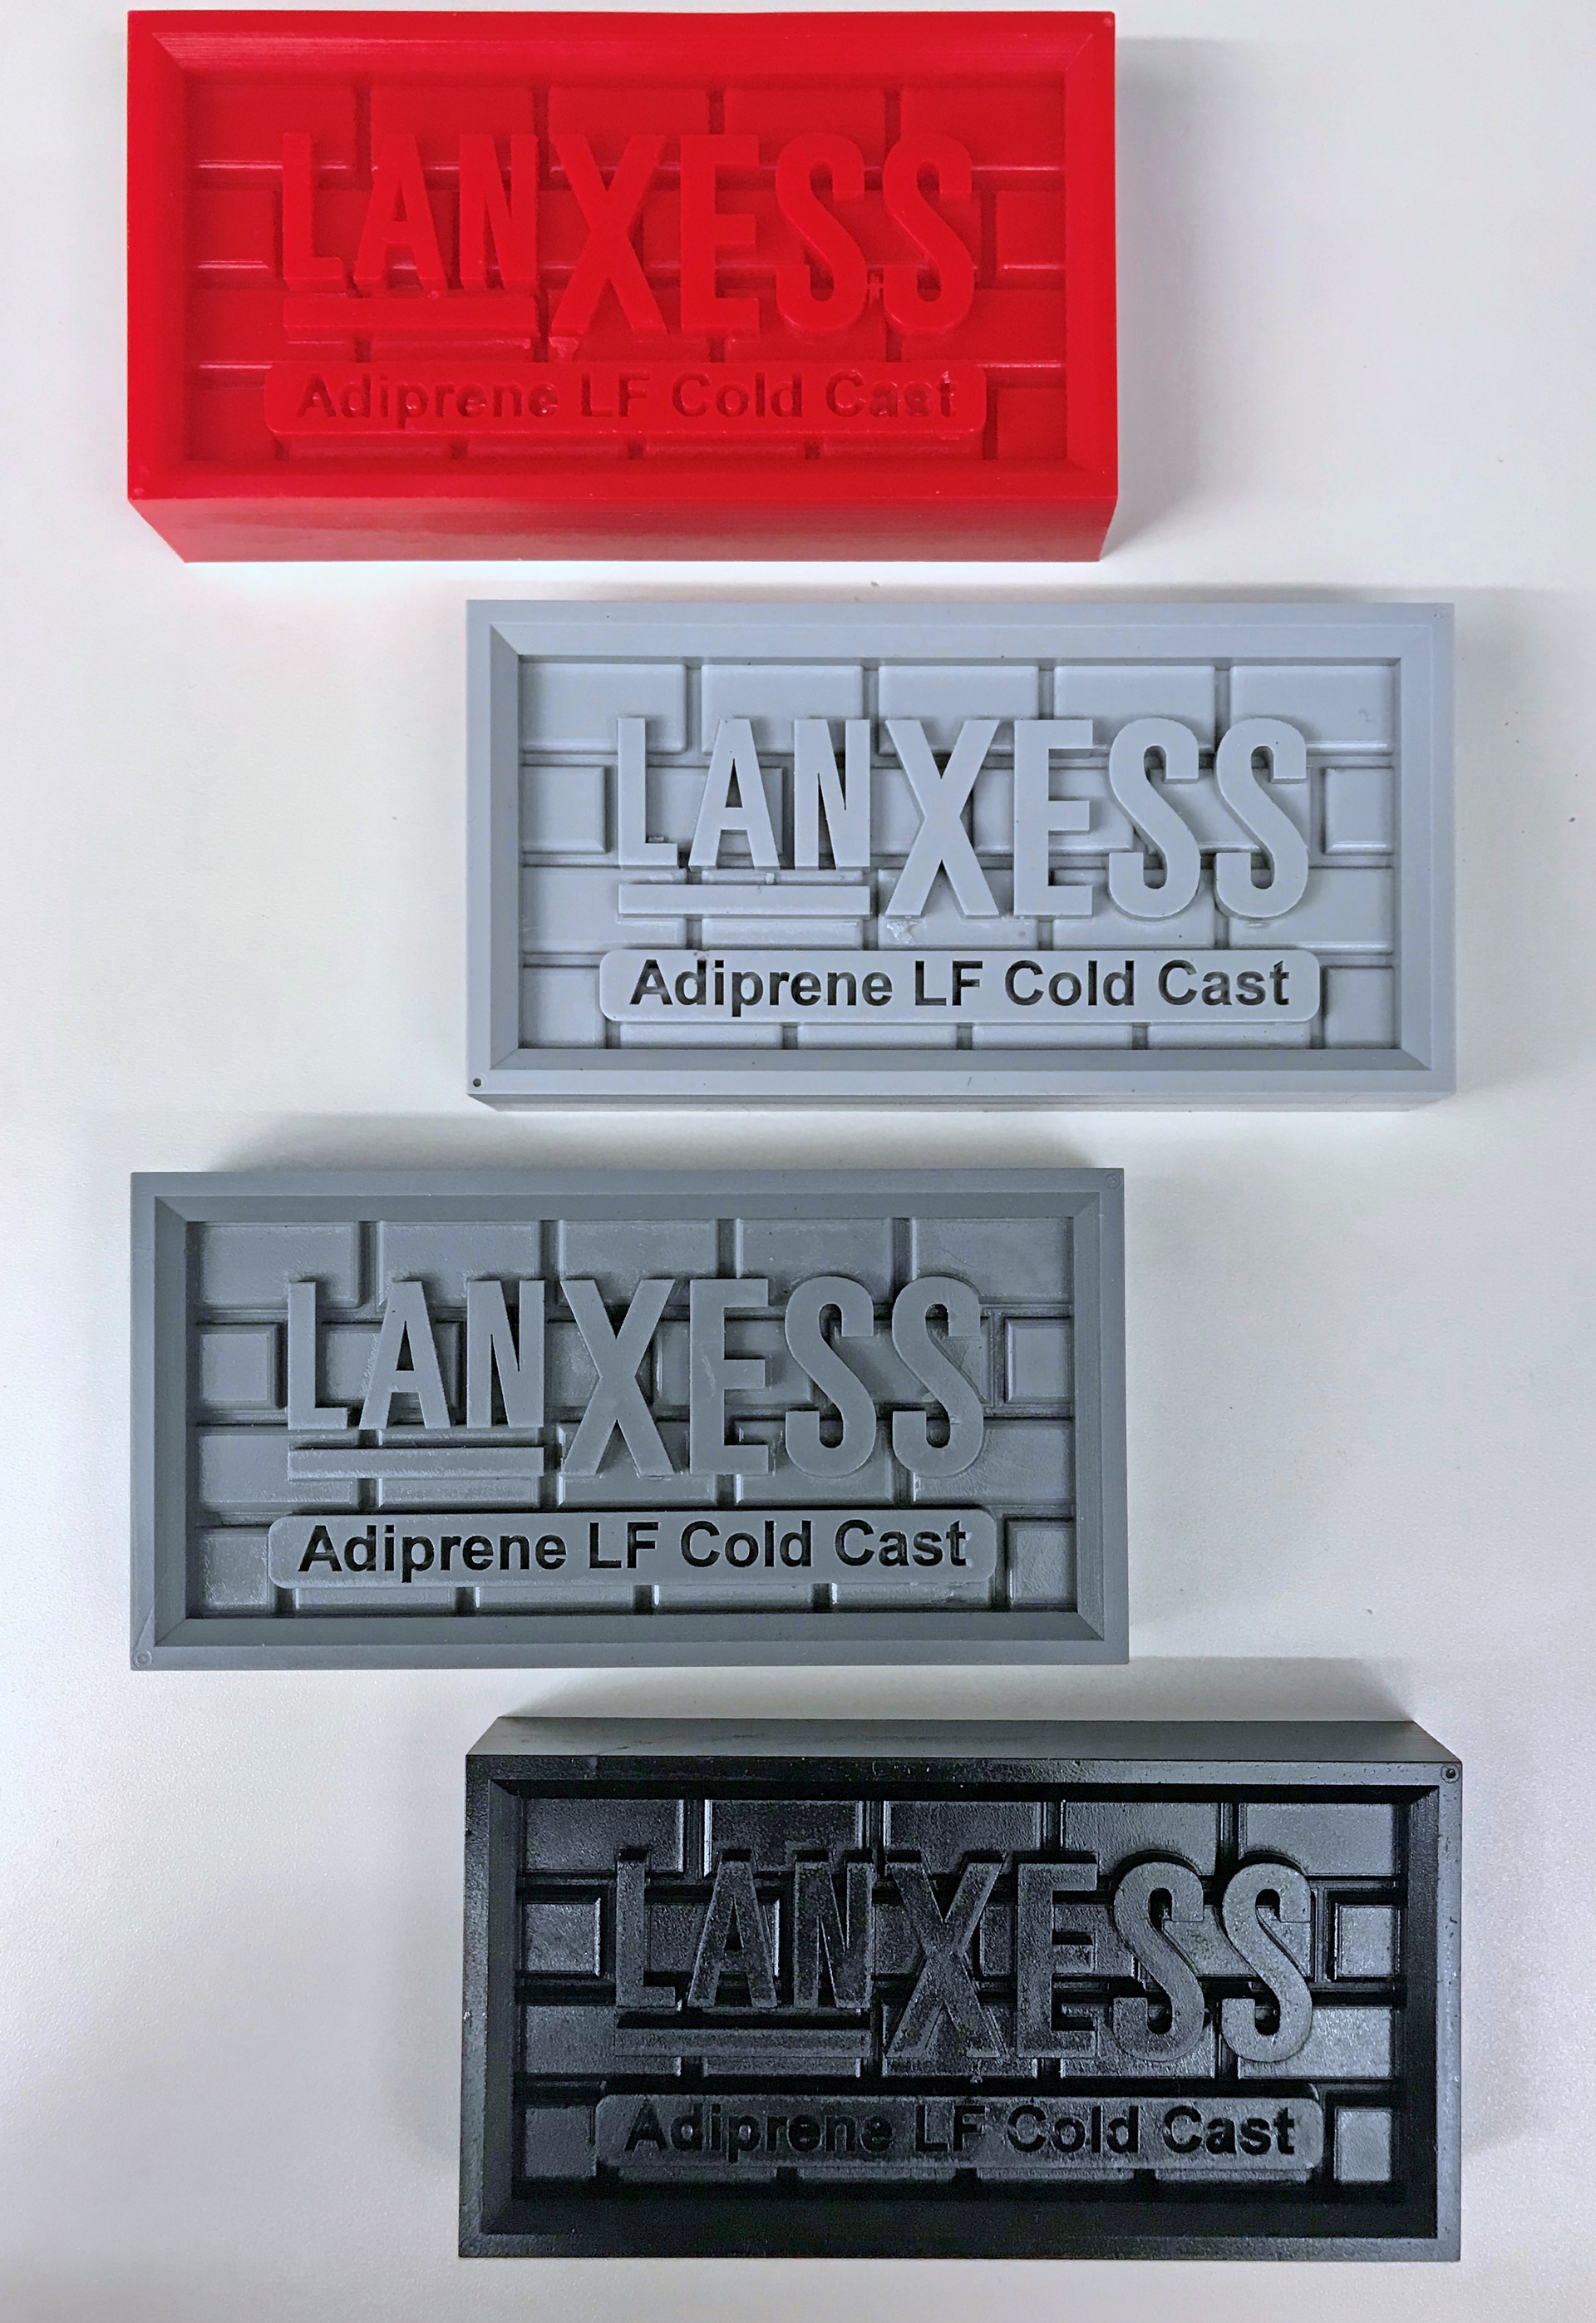 Samples of PU cast elastomers produced with Adiprene LF prepolymers and Vibracure curatives from Lanxess (Source: Lanxess AG)